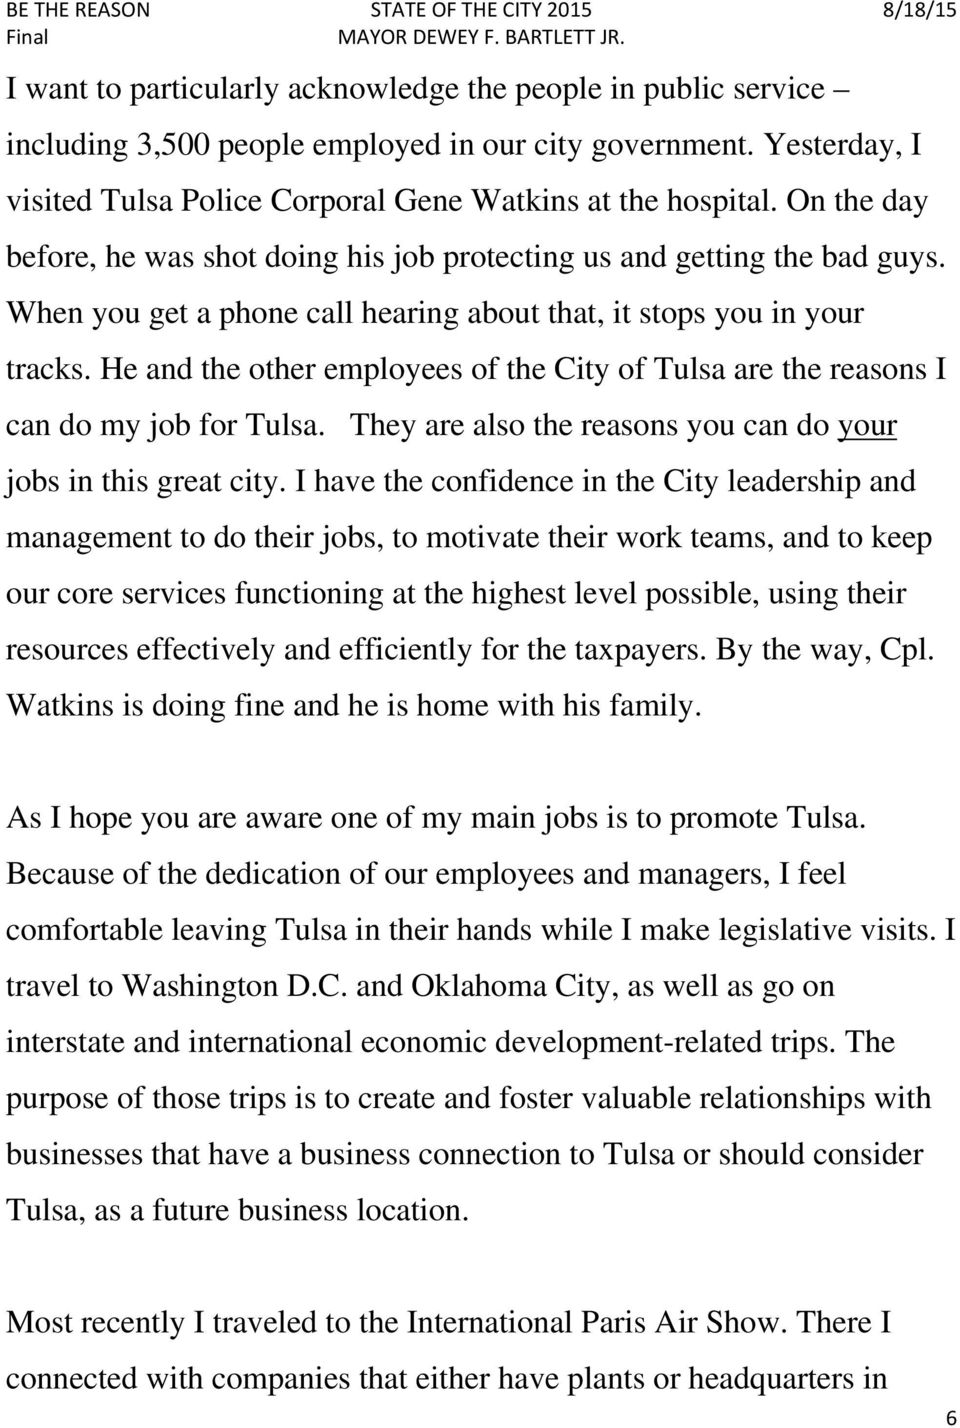 He and the other employees of the City of Tulsa are the reasons I can do my job for Tulsa. They are also the reasons you can do your jobs in this great city.